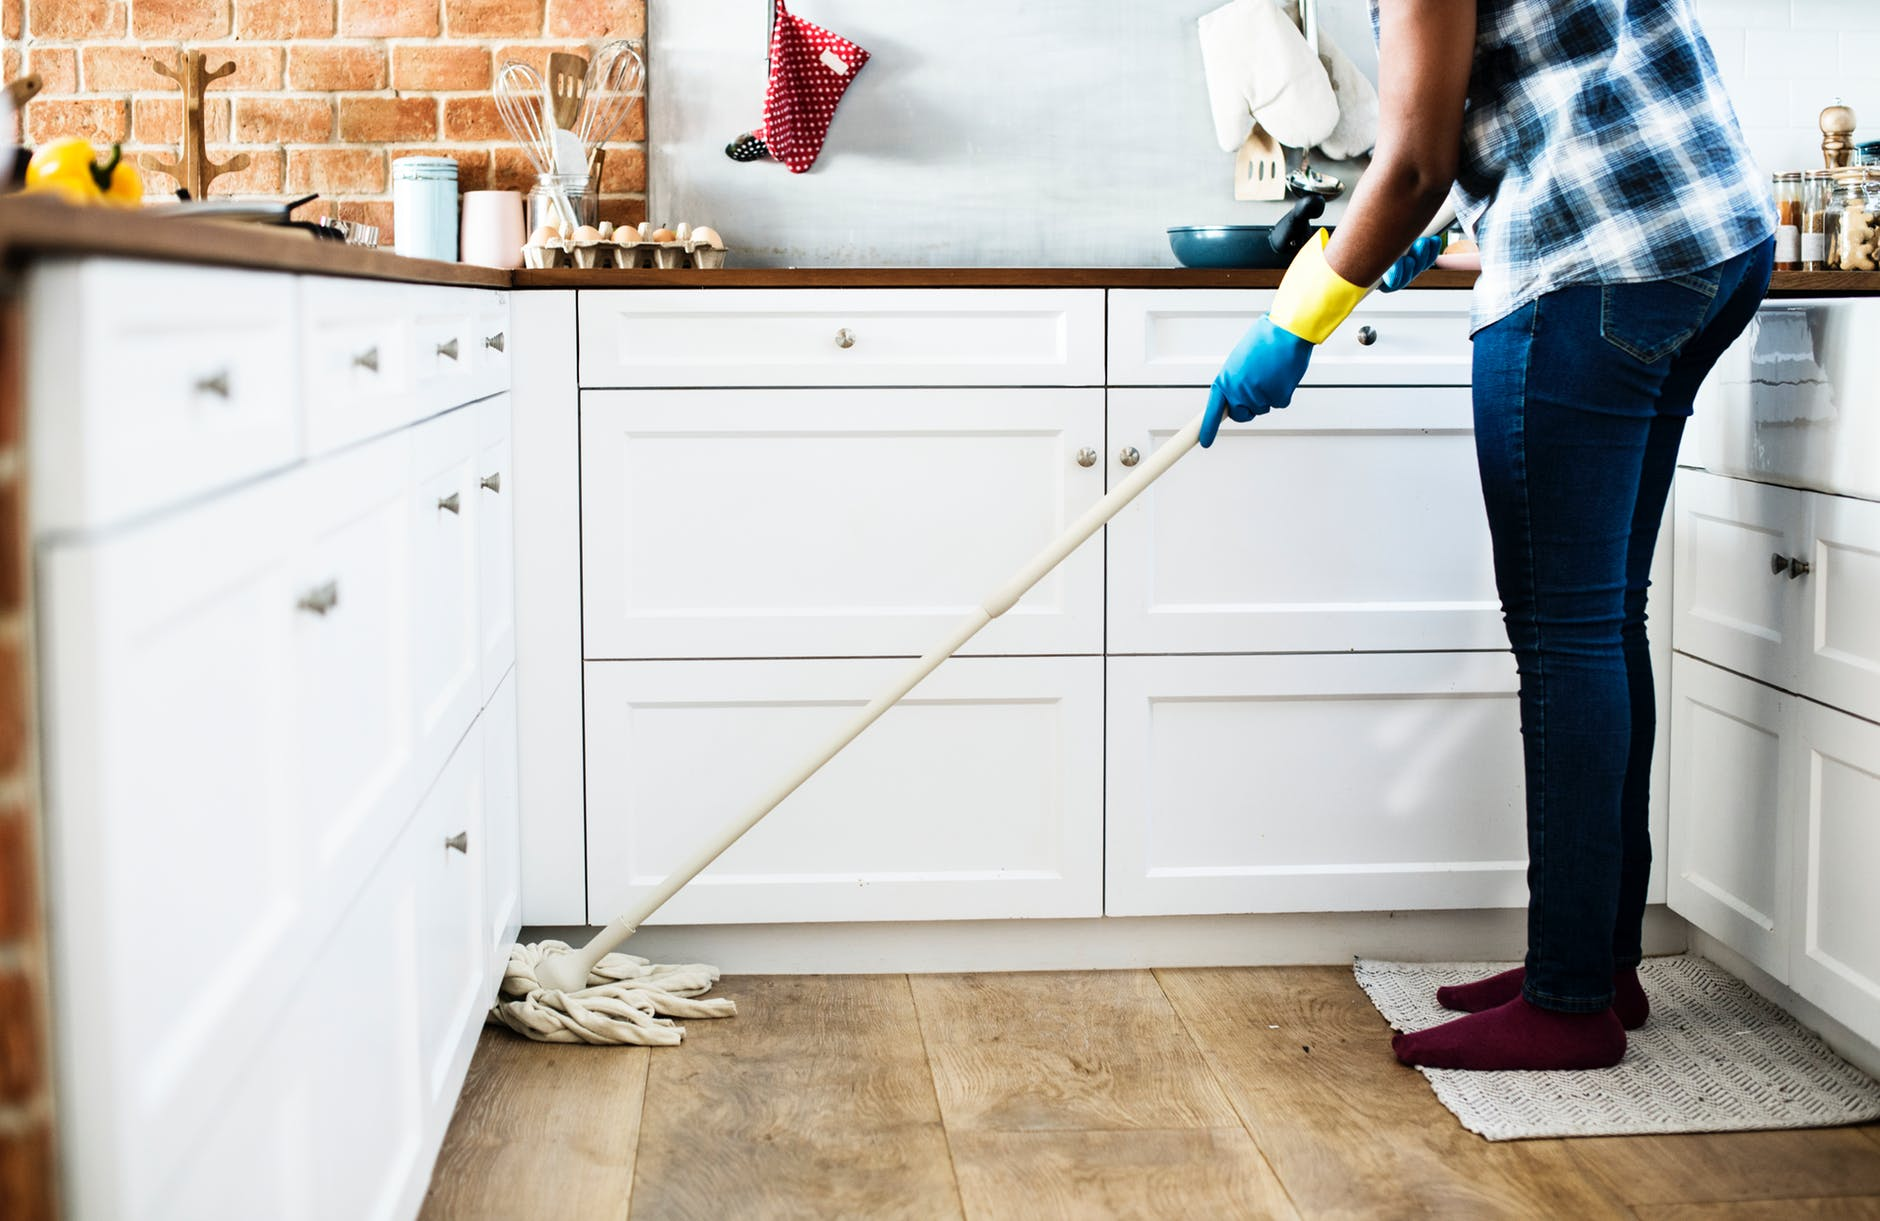 5 Cleaning Hacks for Your Apartment